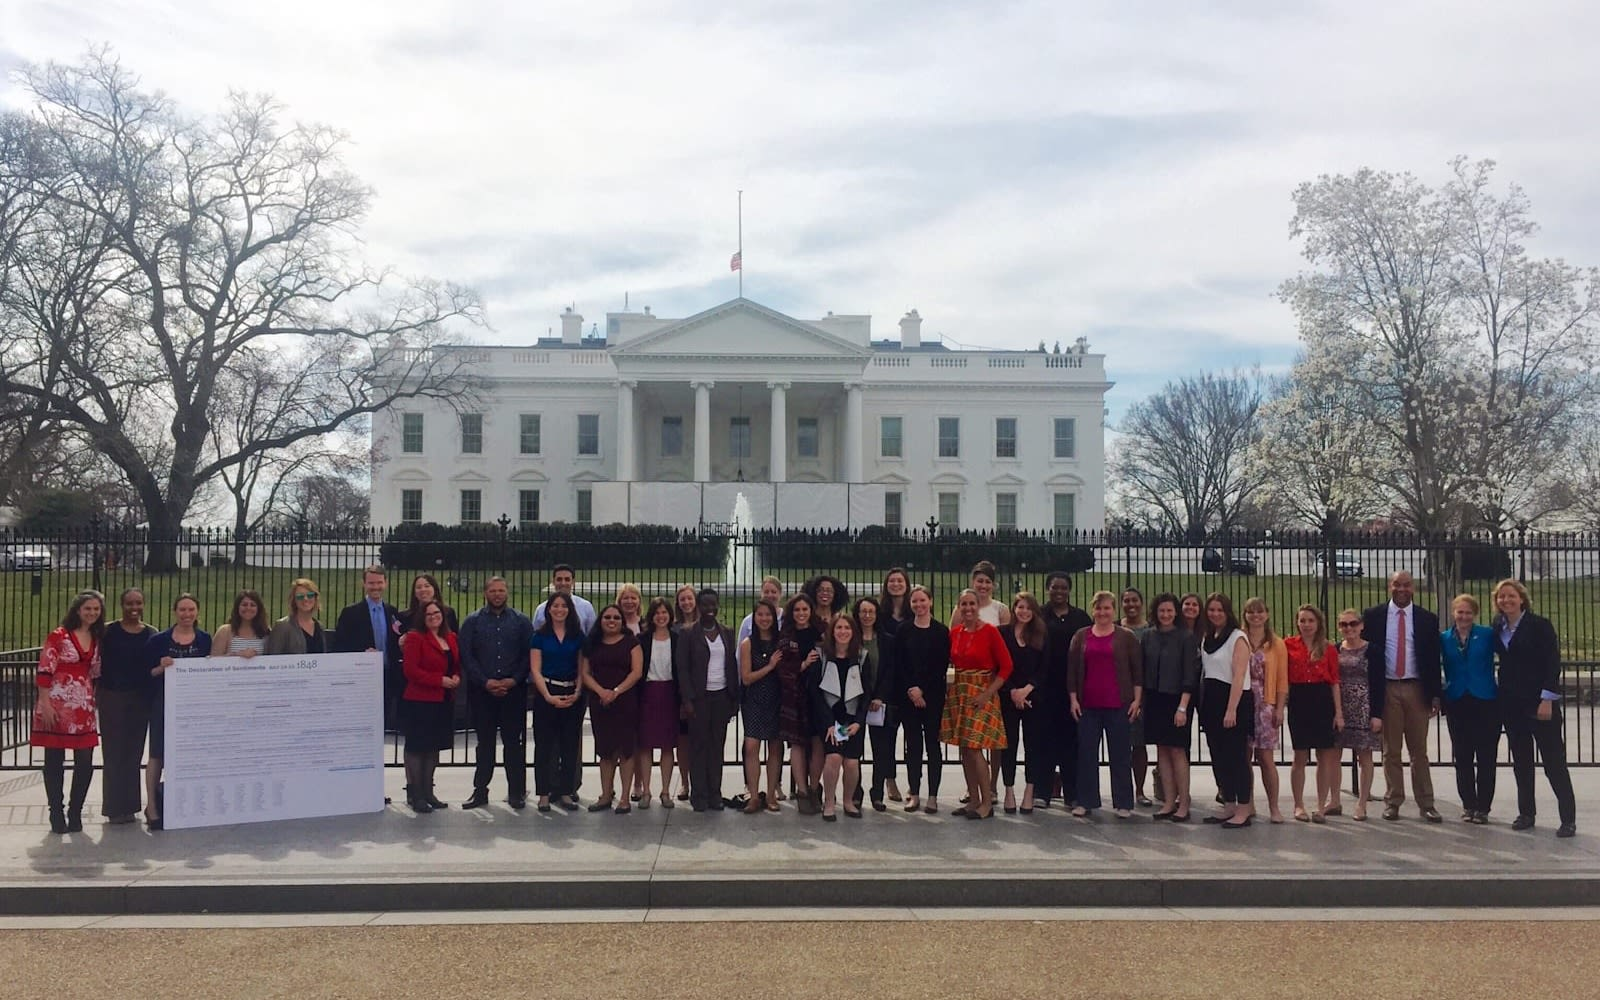 Molly Dillon and her fellow White House interns in front of the White House